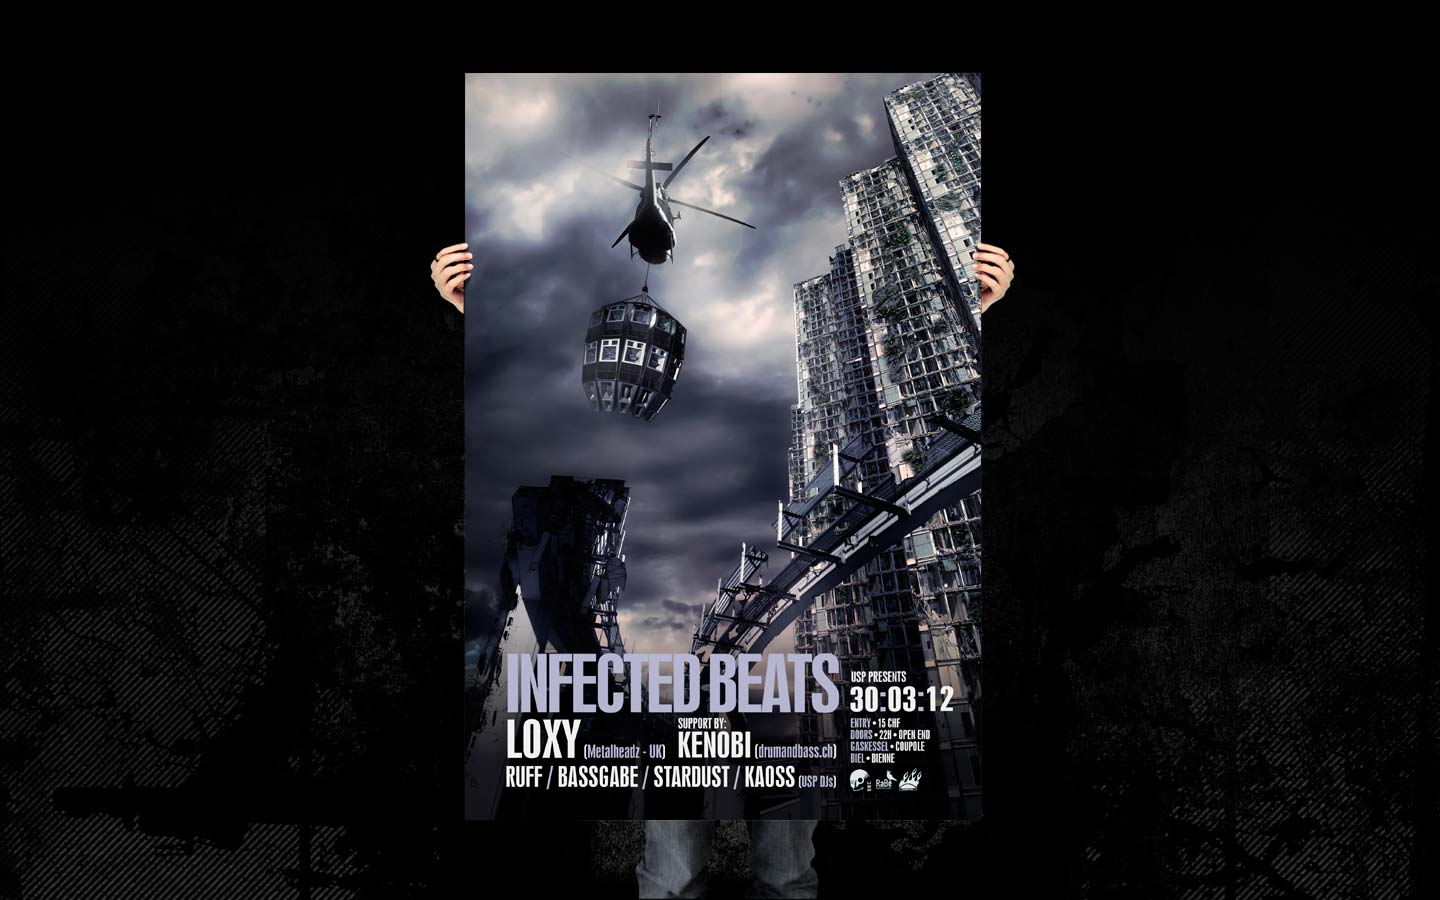 USP -Infected Beats I Poster - Laurent Lemoigne - Donanubis - Don Anubis - Graphic Design - Underground Sound Promotion - Coupole - Bienne - Art - Music - Electronic - Party - Event - Flyer - Poster - Industrial - Dark - Apocalypse - Destroy - I am a Legend - Doomsday - Alternative - Underground - Geneva - Switzerland - Drum and Bass - Dubstep - Loxy / Metalheadz - Kenobi - Ruff - Bassgabe - Stardust - Kaoss - Metal - Hard - Rock - Death - Band - Illustration